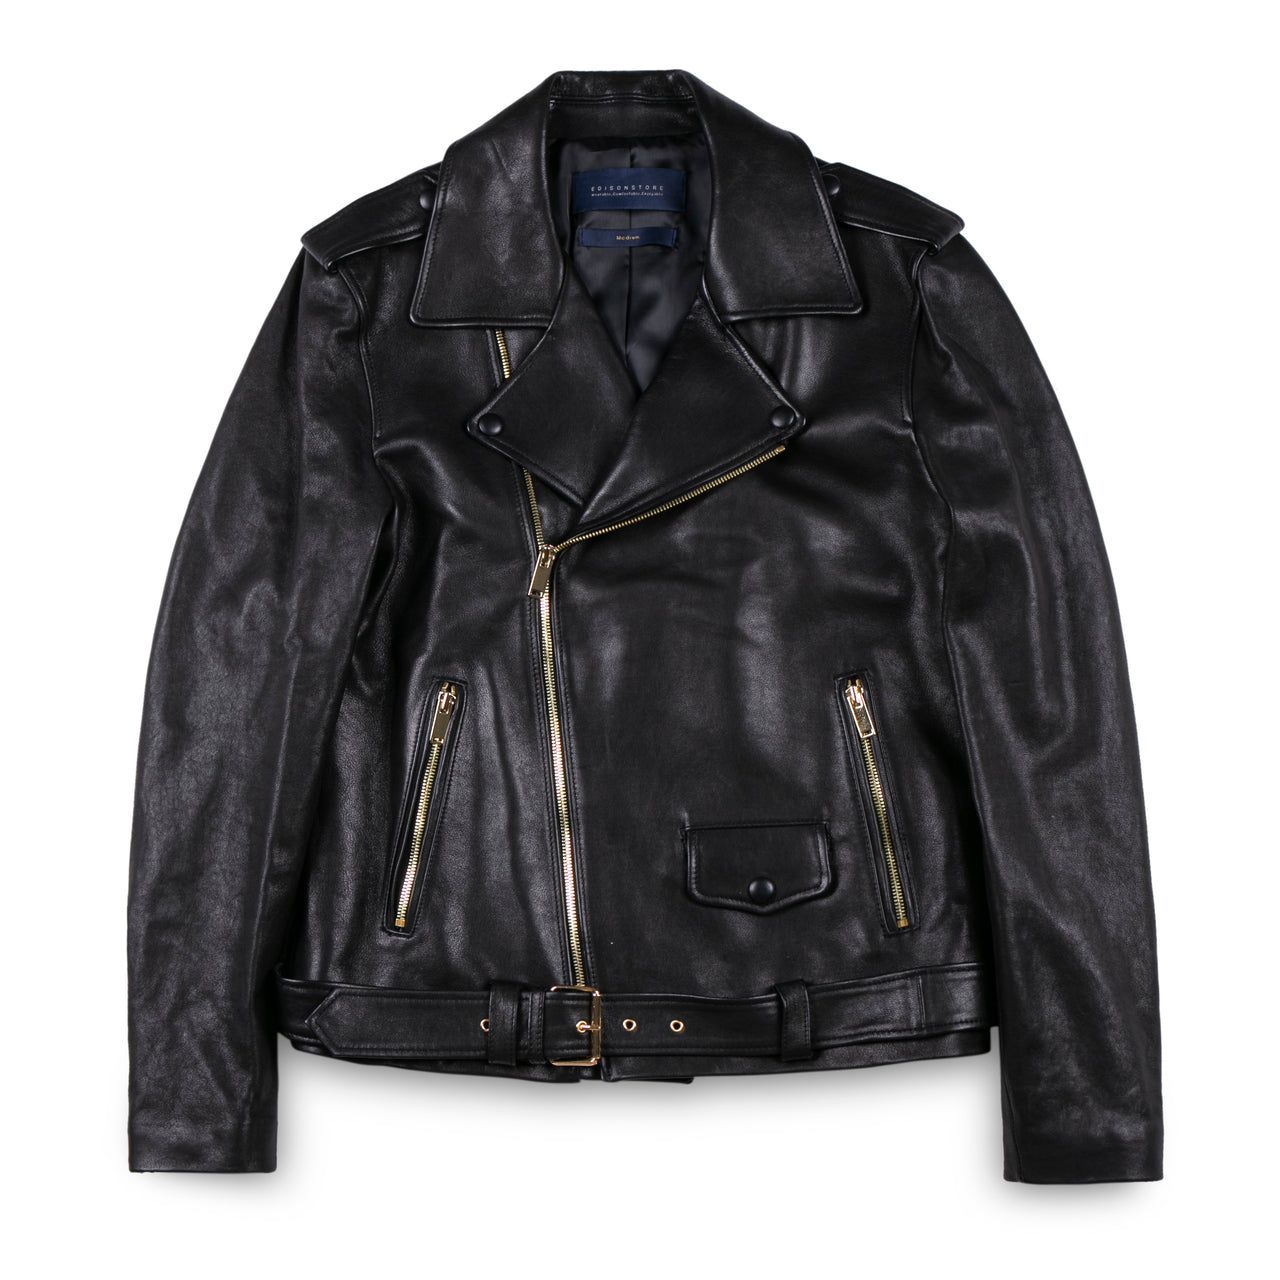 Edison Store Leather Biker Jacket with Black Leather Button